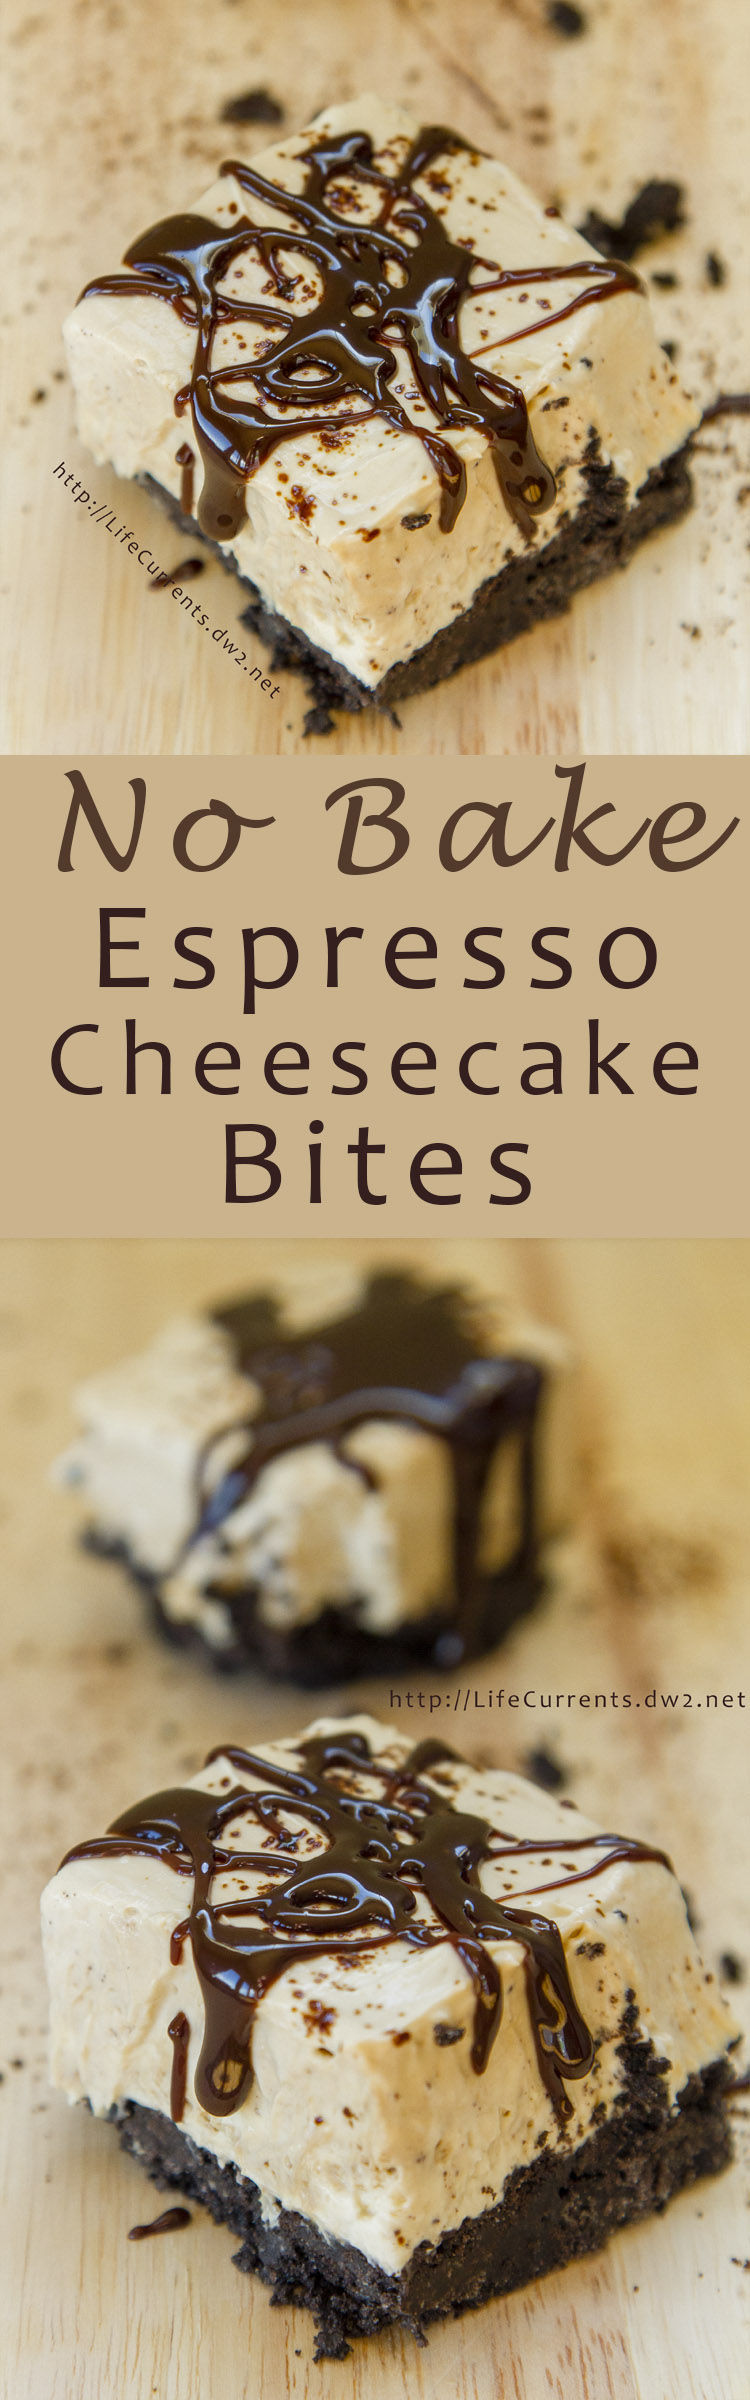 No Bake Espresso Cheesecake Bites are so easy to make, and amazingly delicious! Make them today!